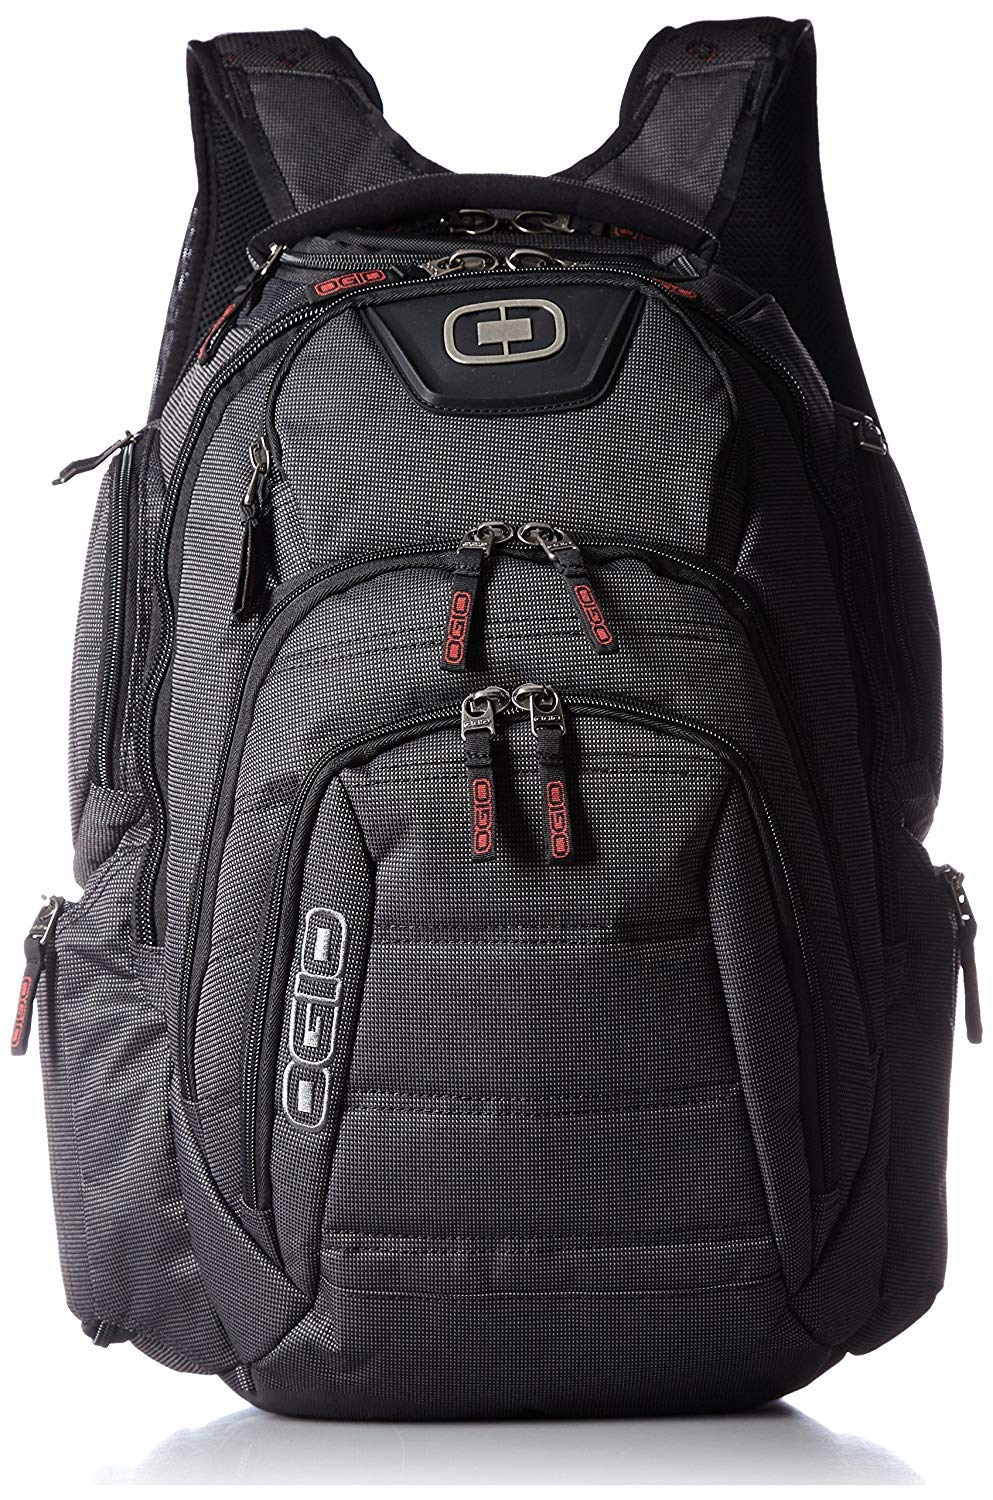 OGIO Renegade RSS Day Pack, Large, Black Pindot by OGIO